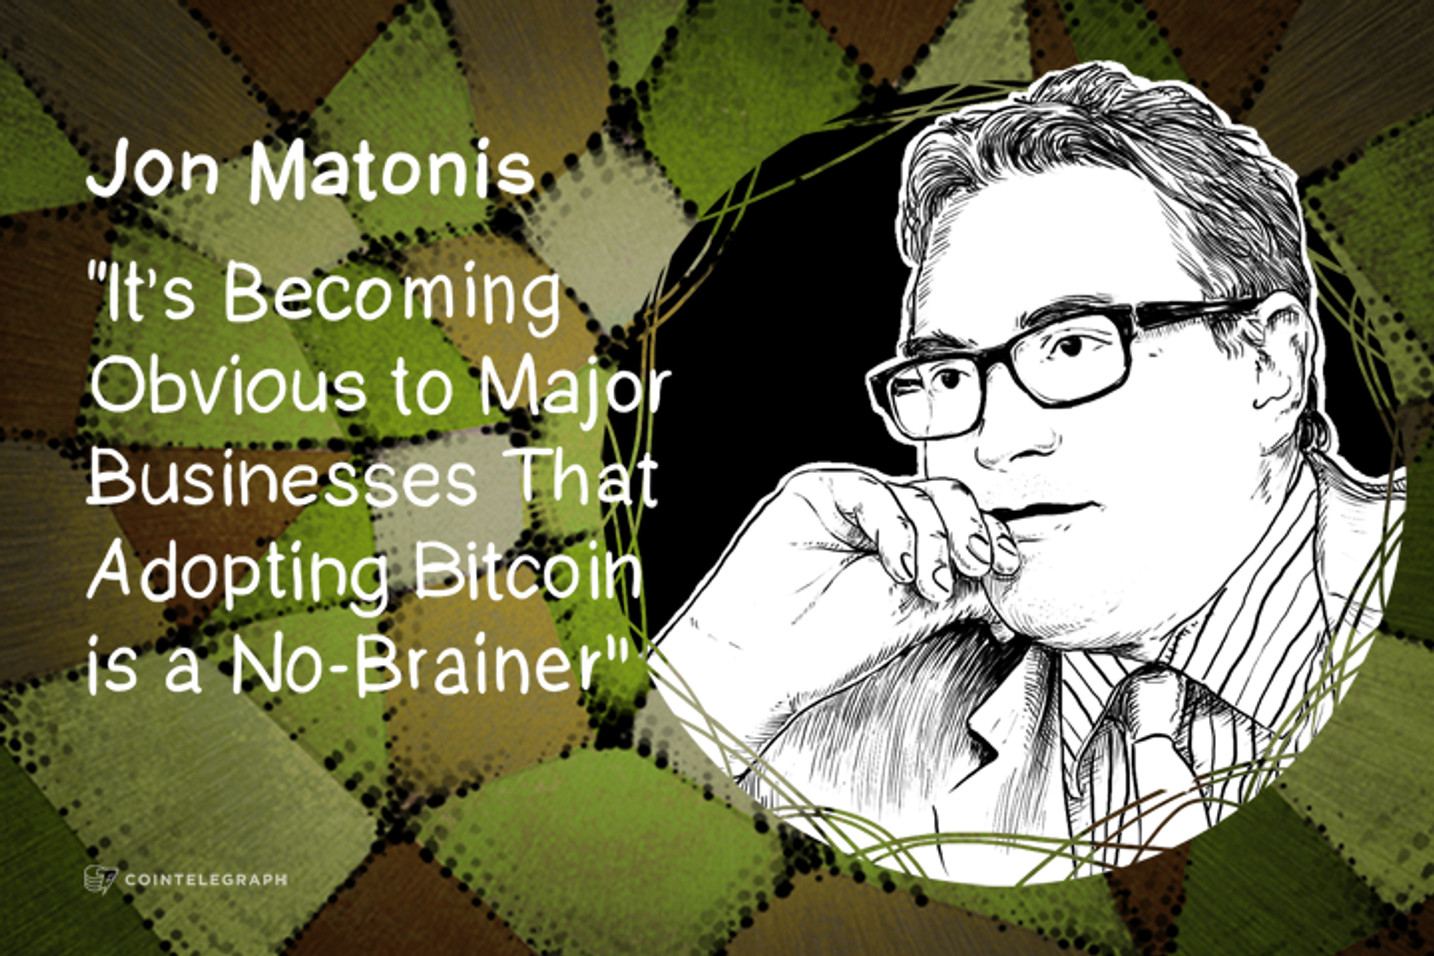 Jon Matonis: It's Becoming Obvious to Major Businesses That Adopting Bitcoin is a No-Brainer